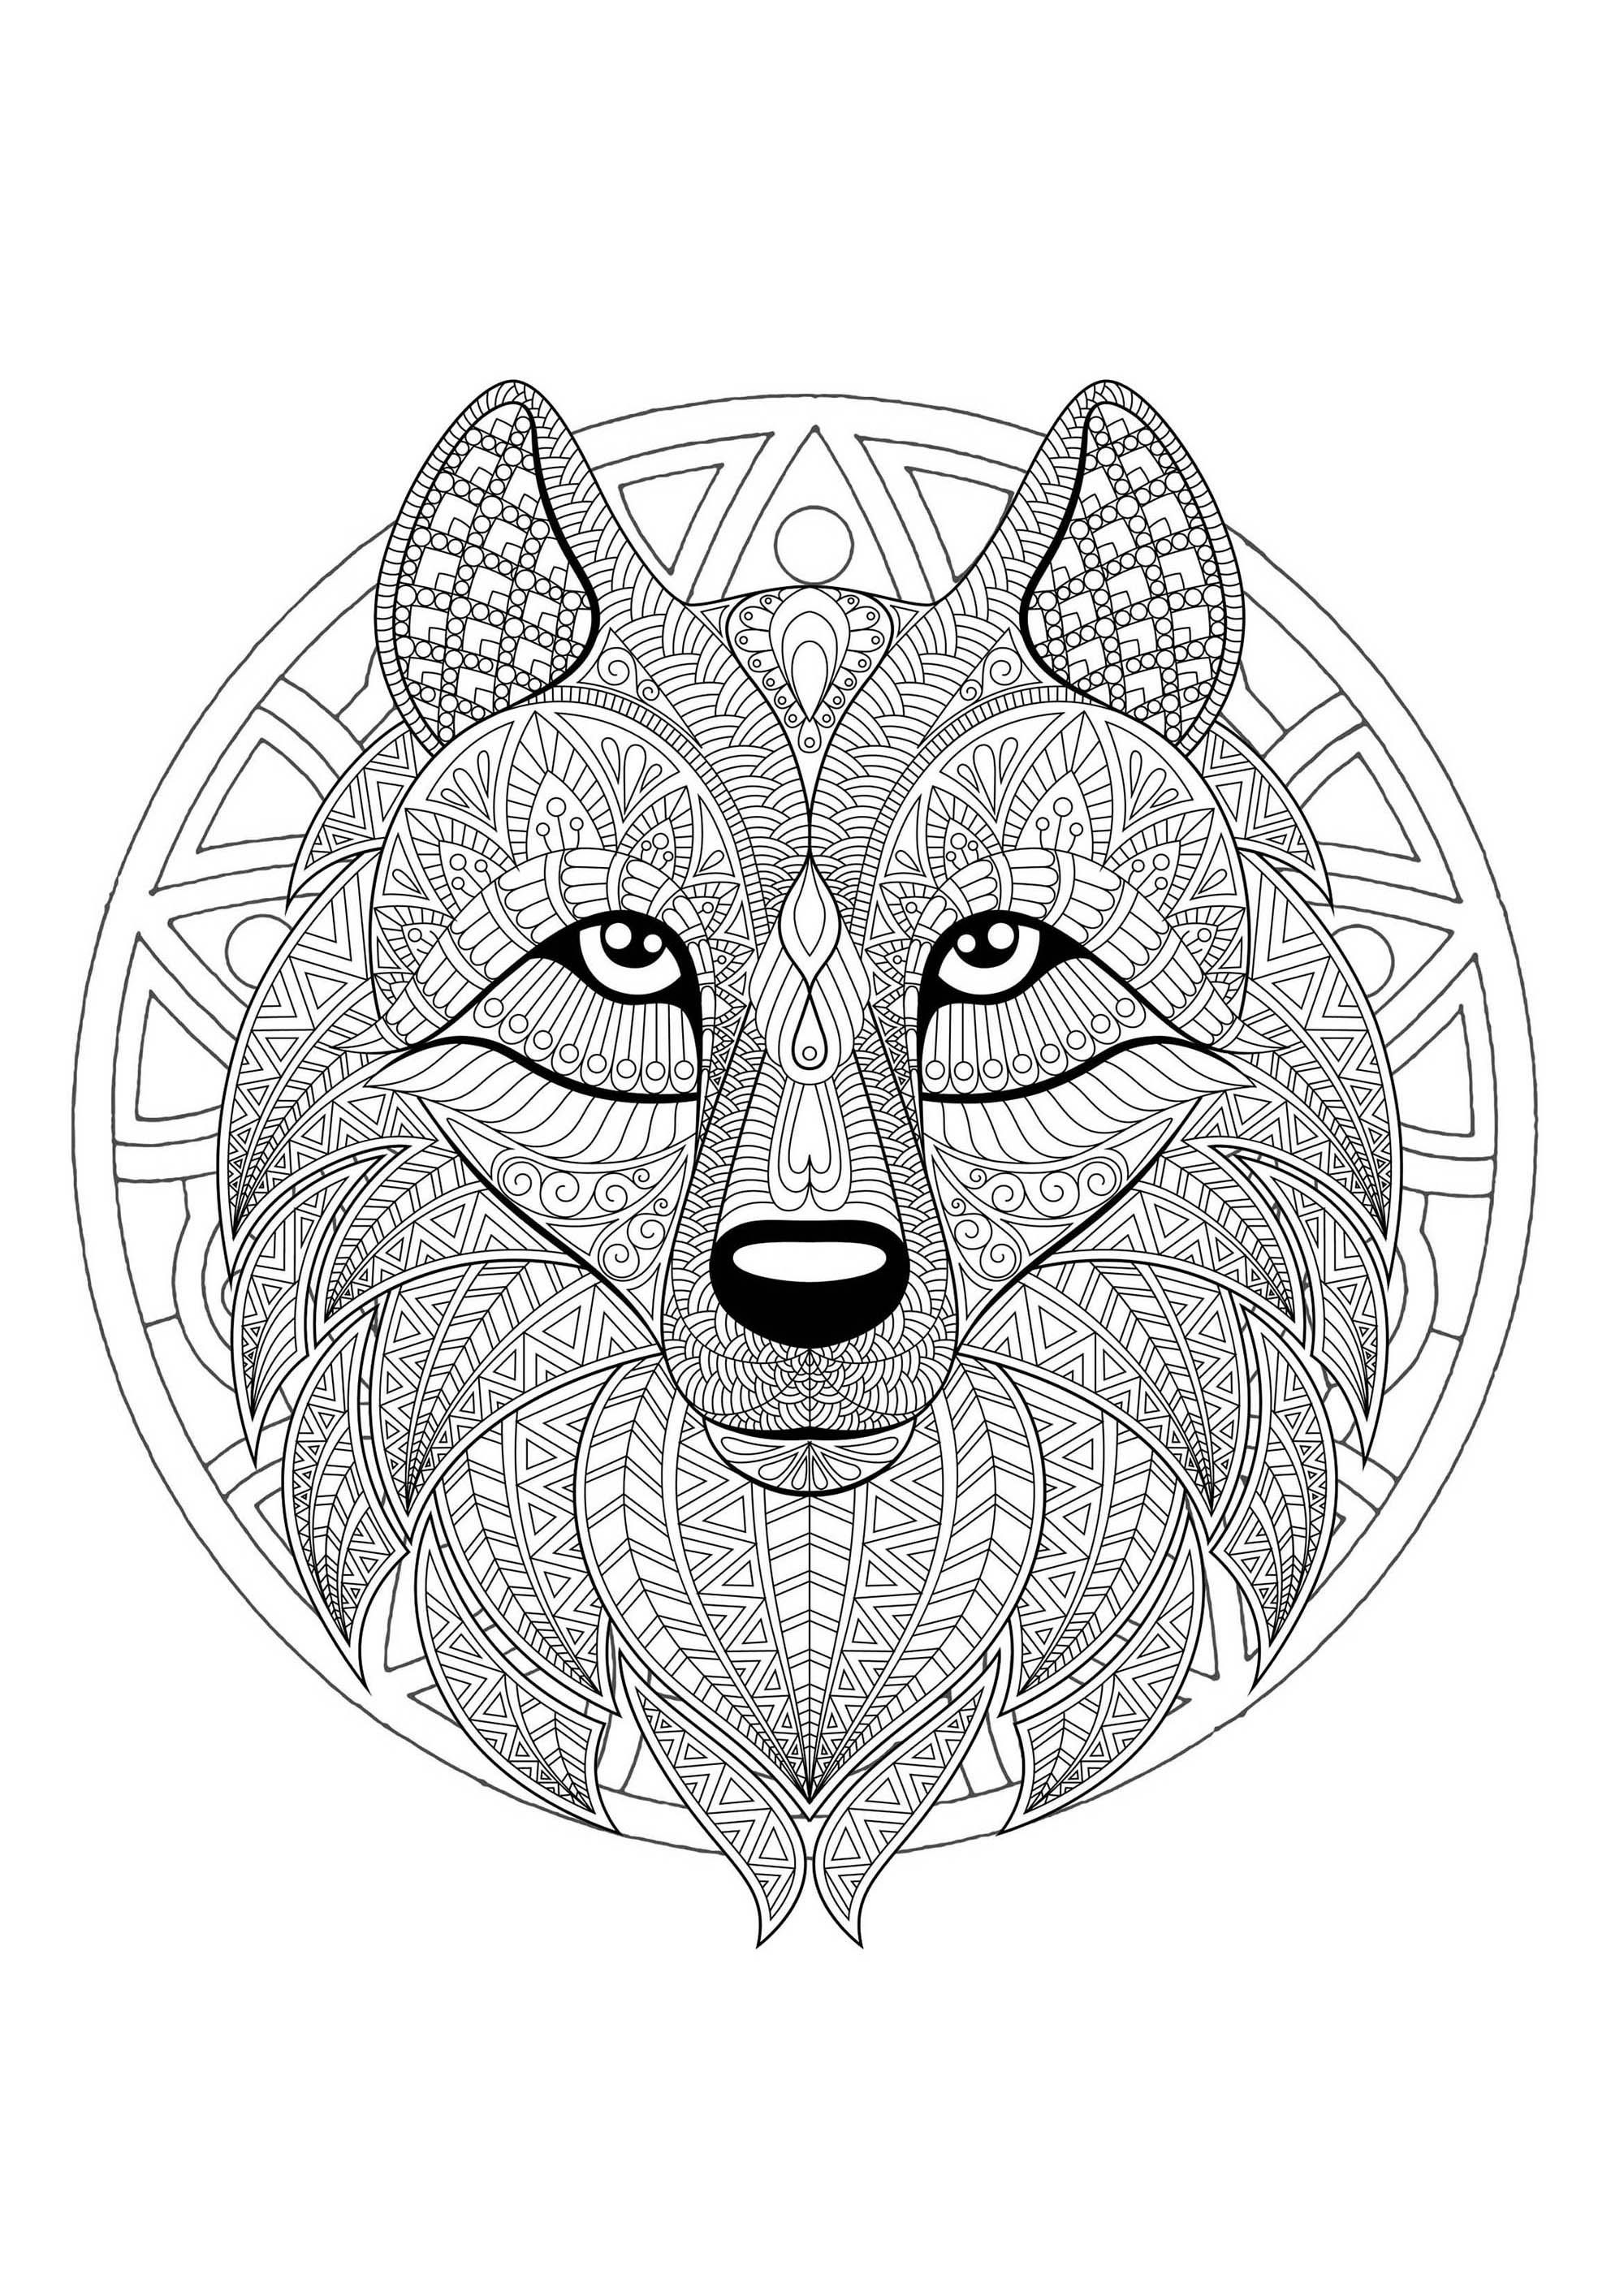 Mandala Tete Loup 2 Coloriages Mandalas Just Color Coloriage